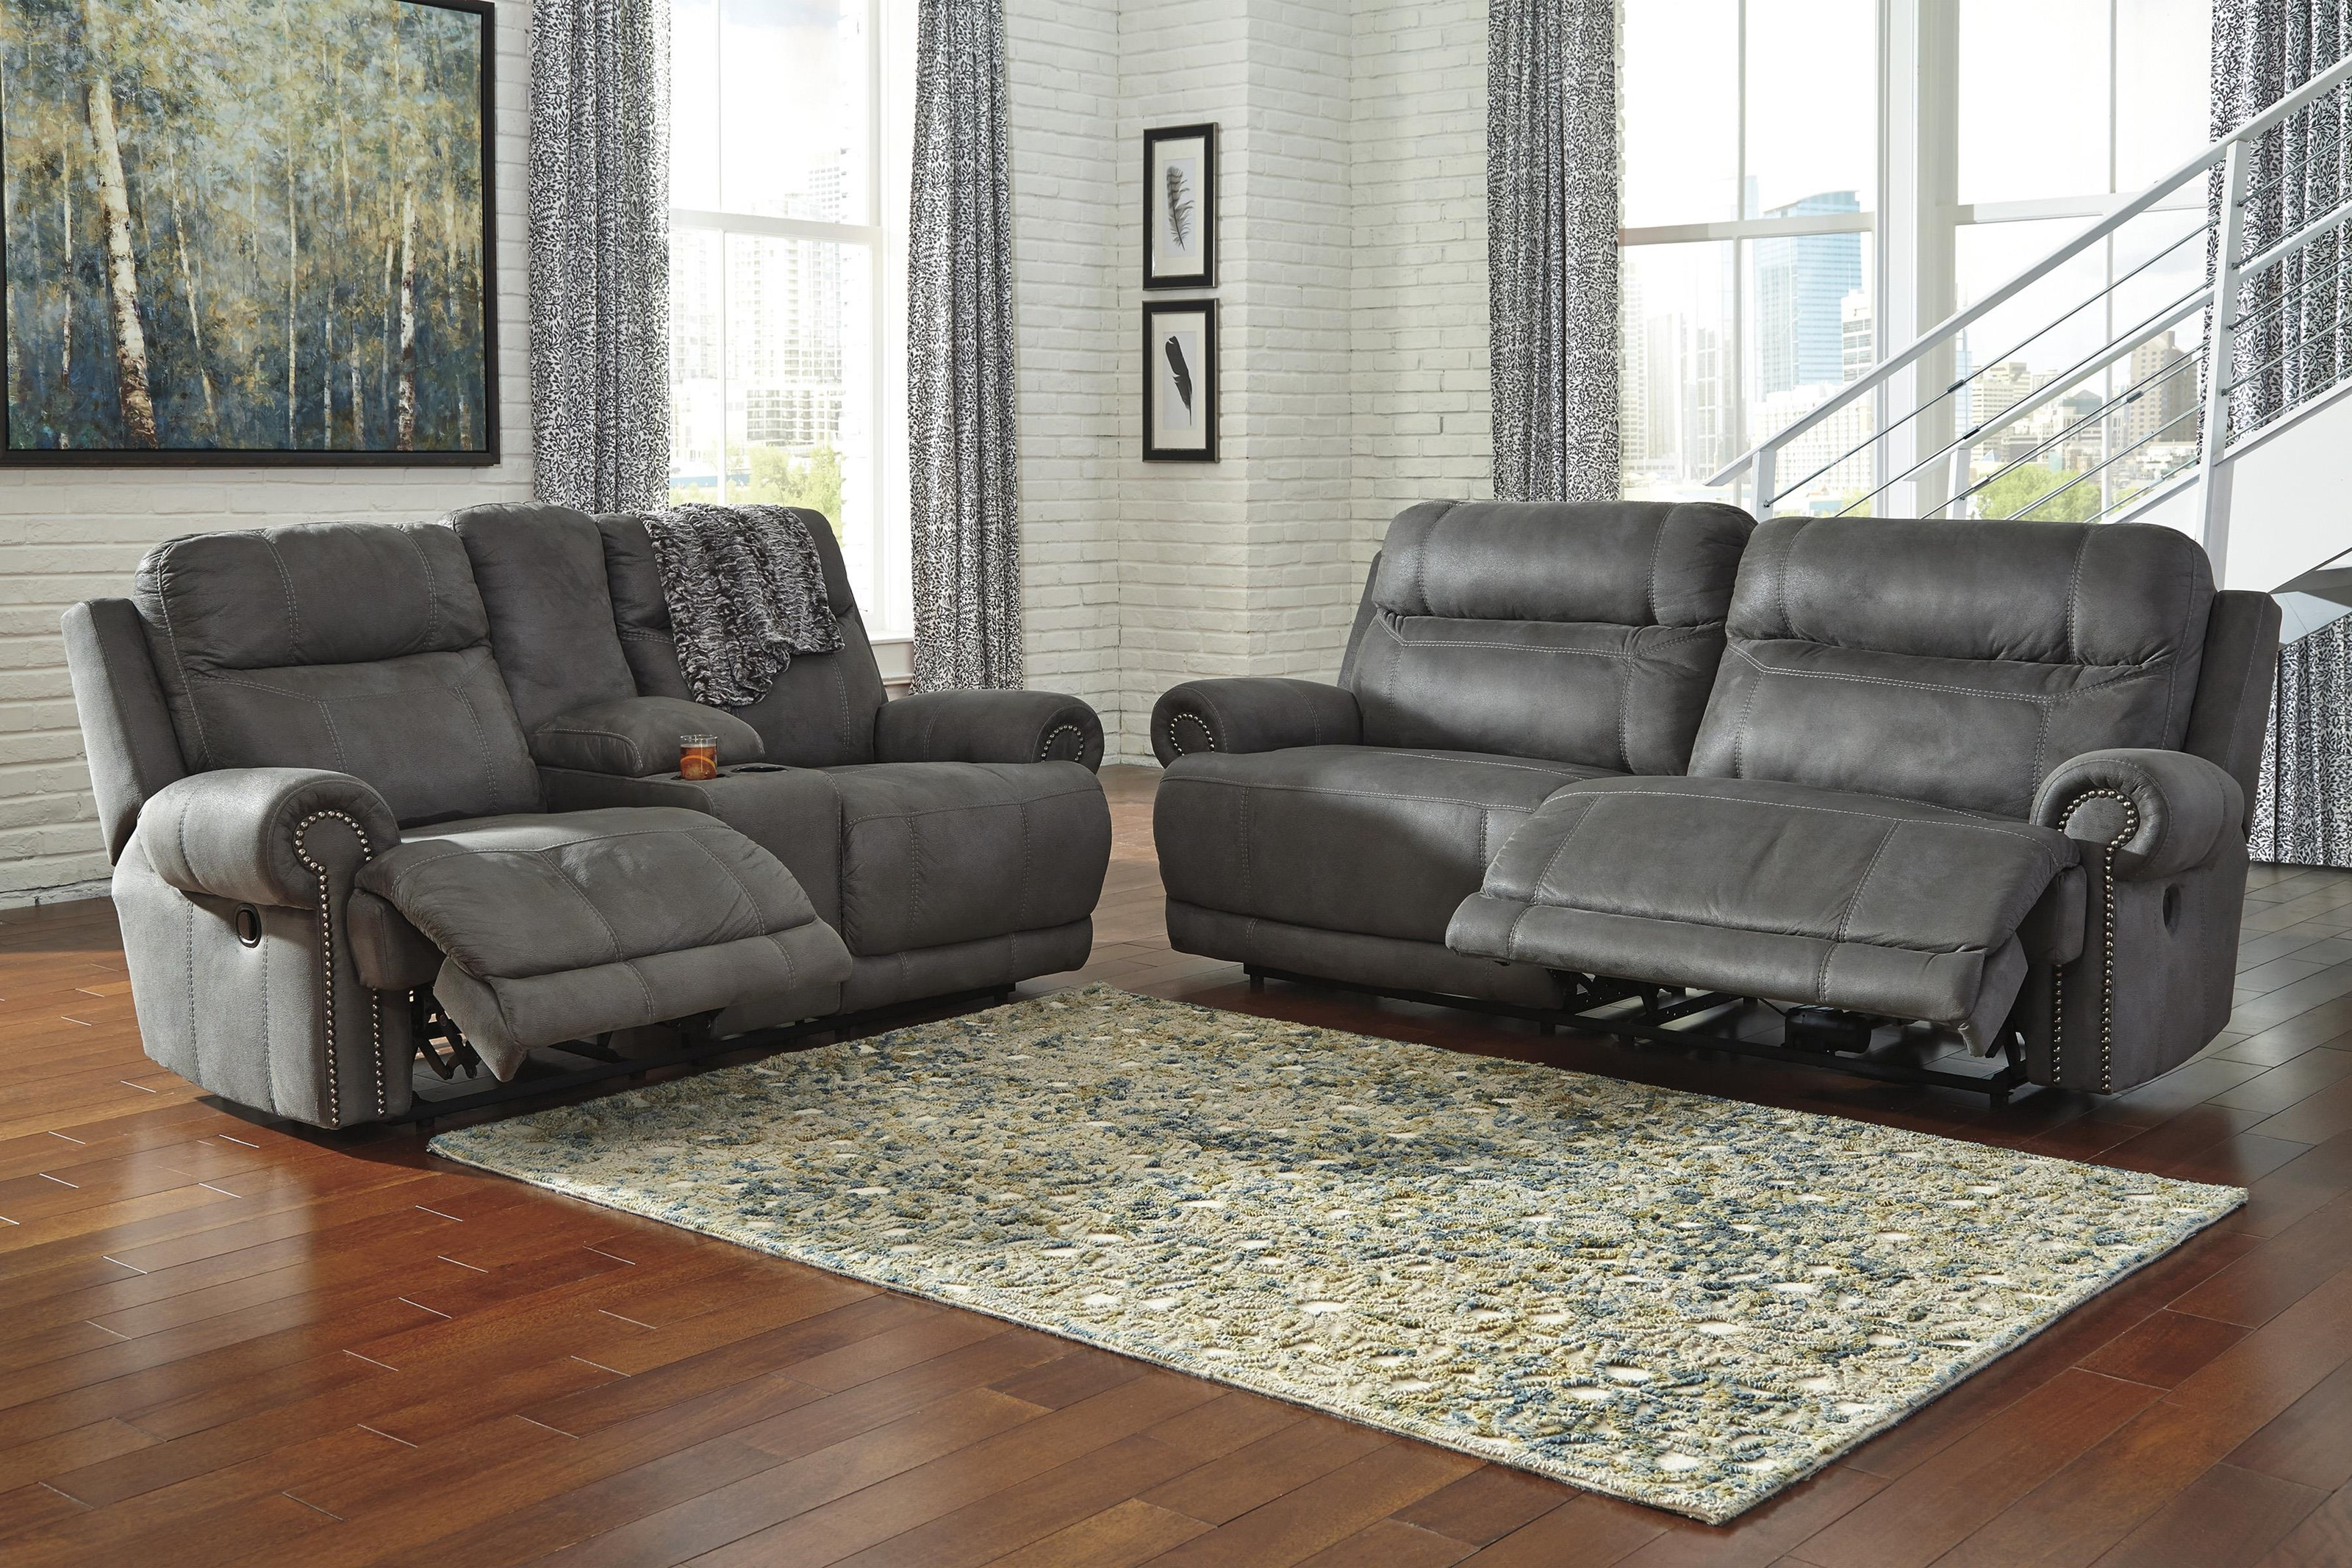 Power Recliner Sofa, Loveseat and Recliner S